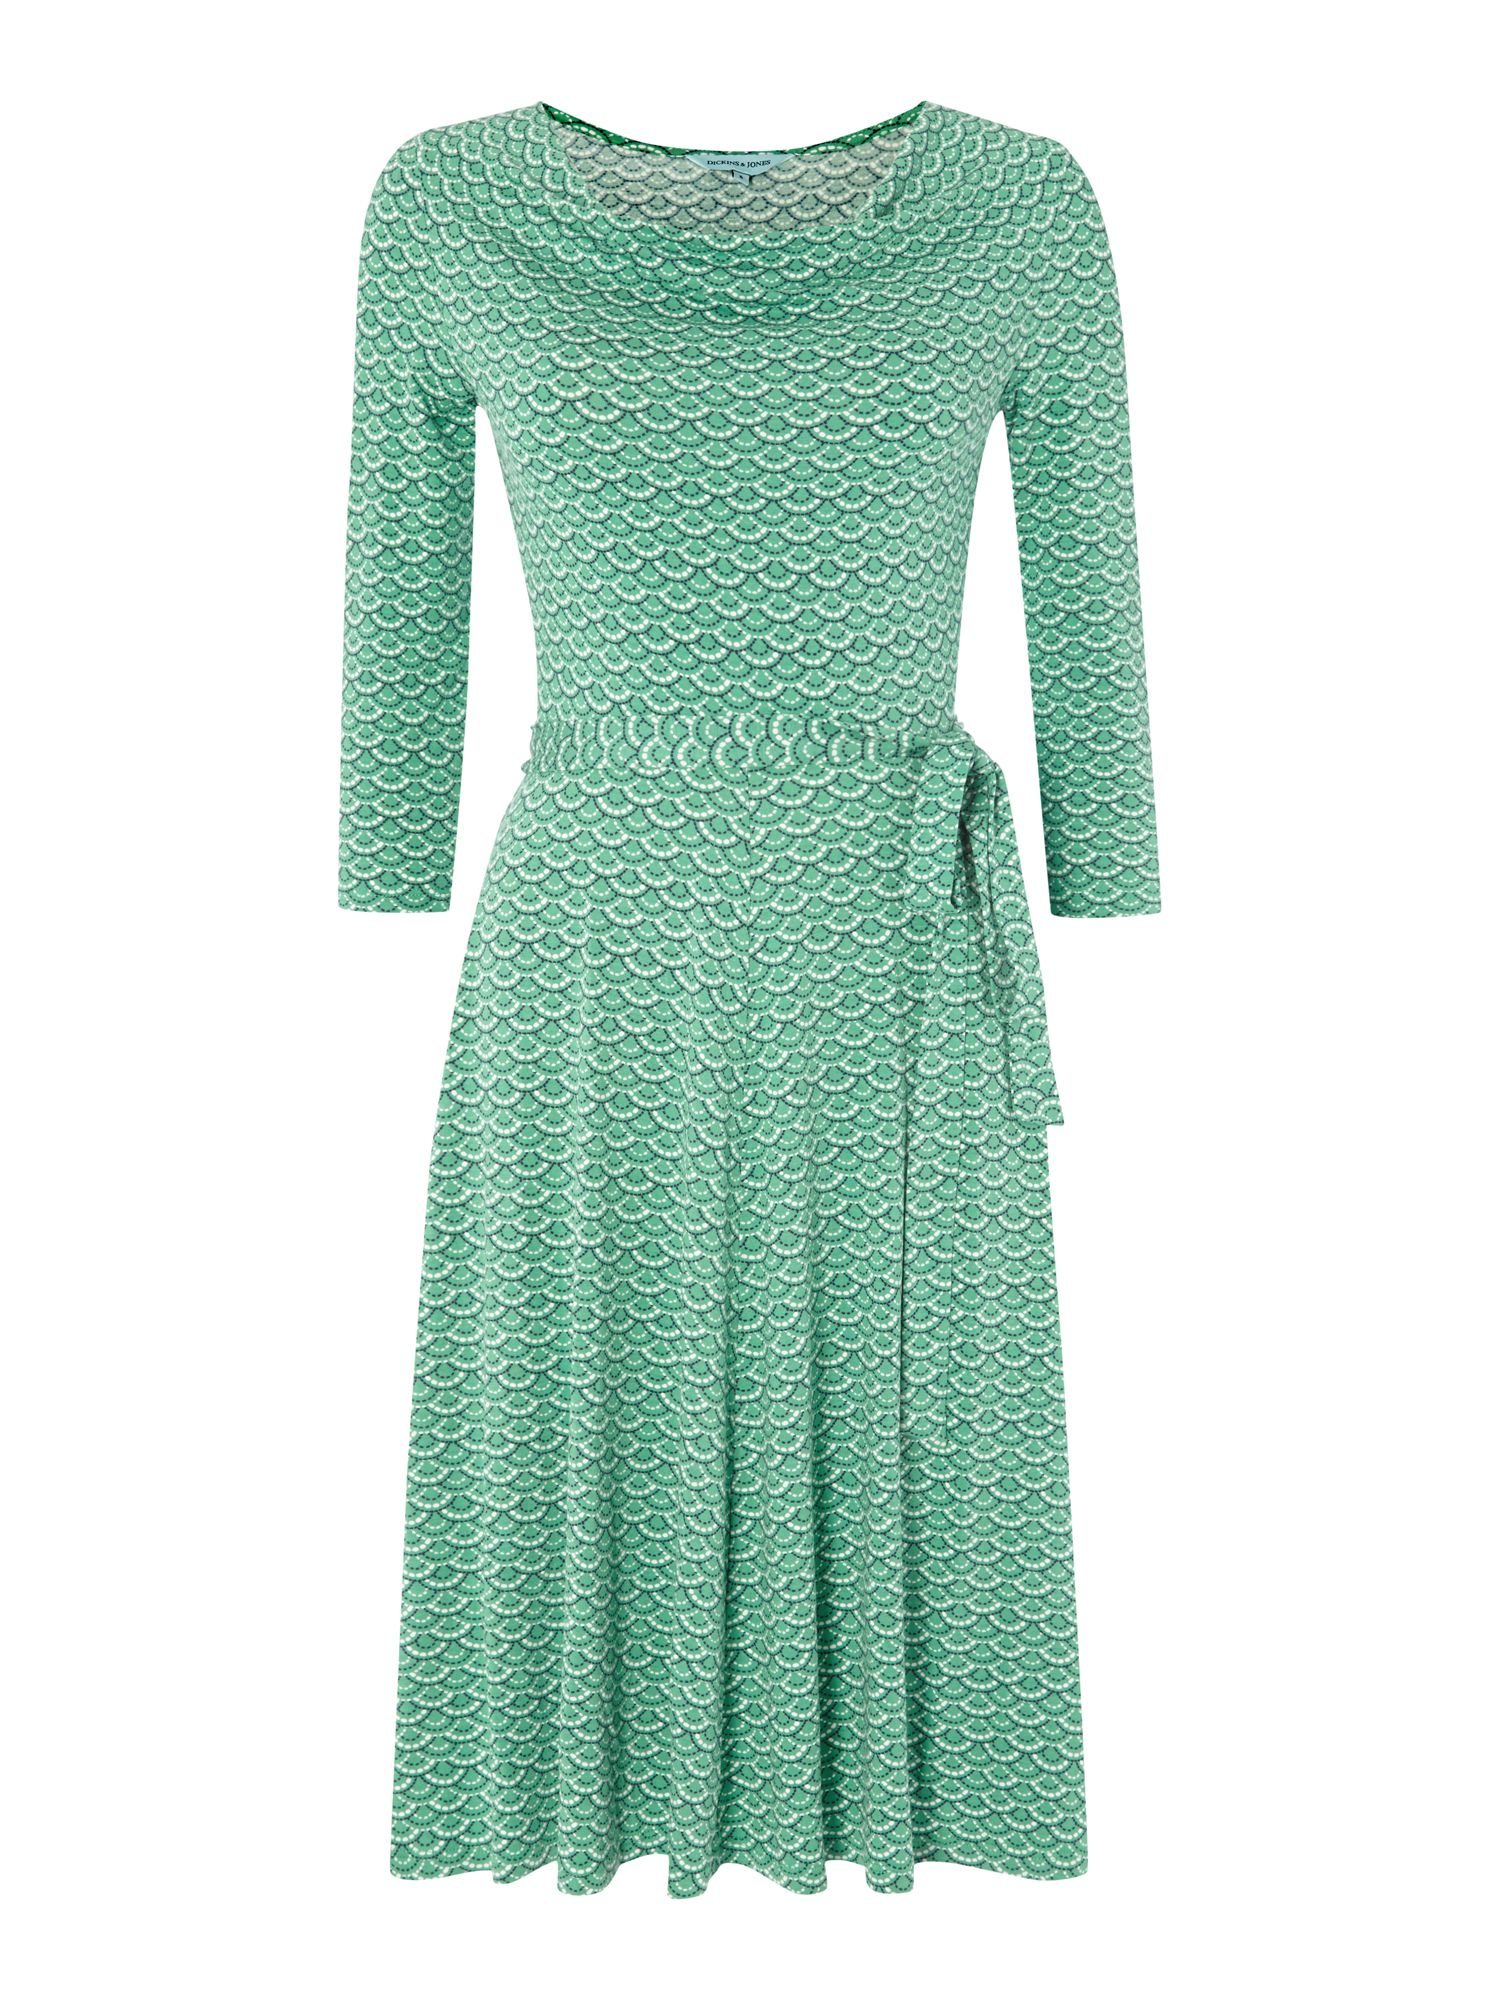 Fan print cowl neck belted jersey dress